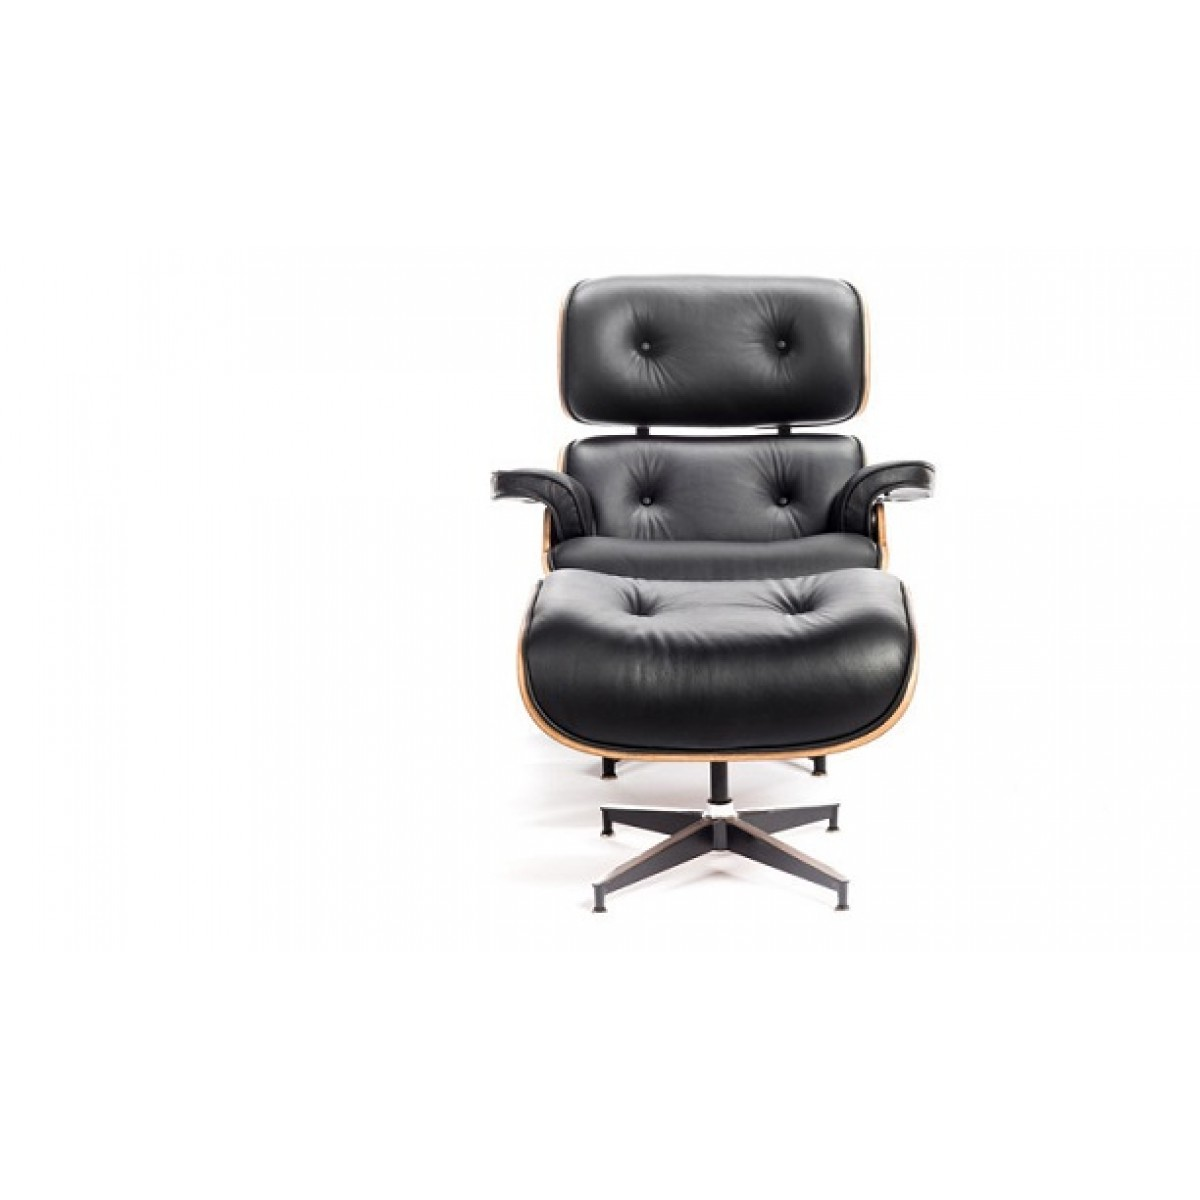 Eames Style Lounge Chair And Ottoman Black Leather Oak PlyWood   Replica